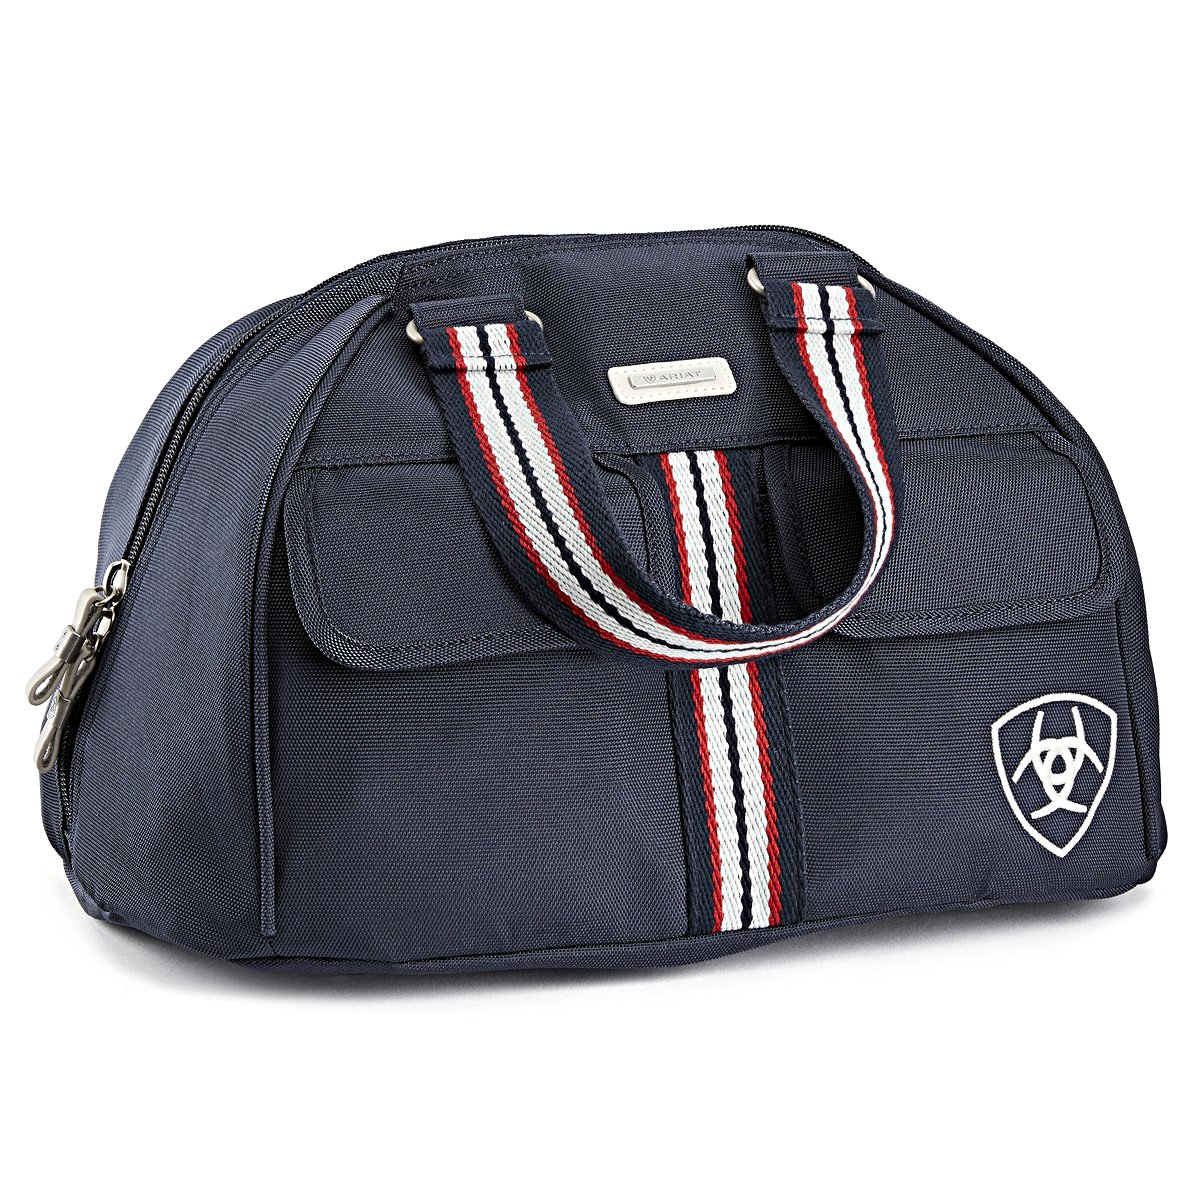 Billede af Ariat Hat Bag Team Helmet Bag Navy One Size